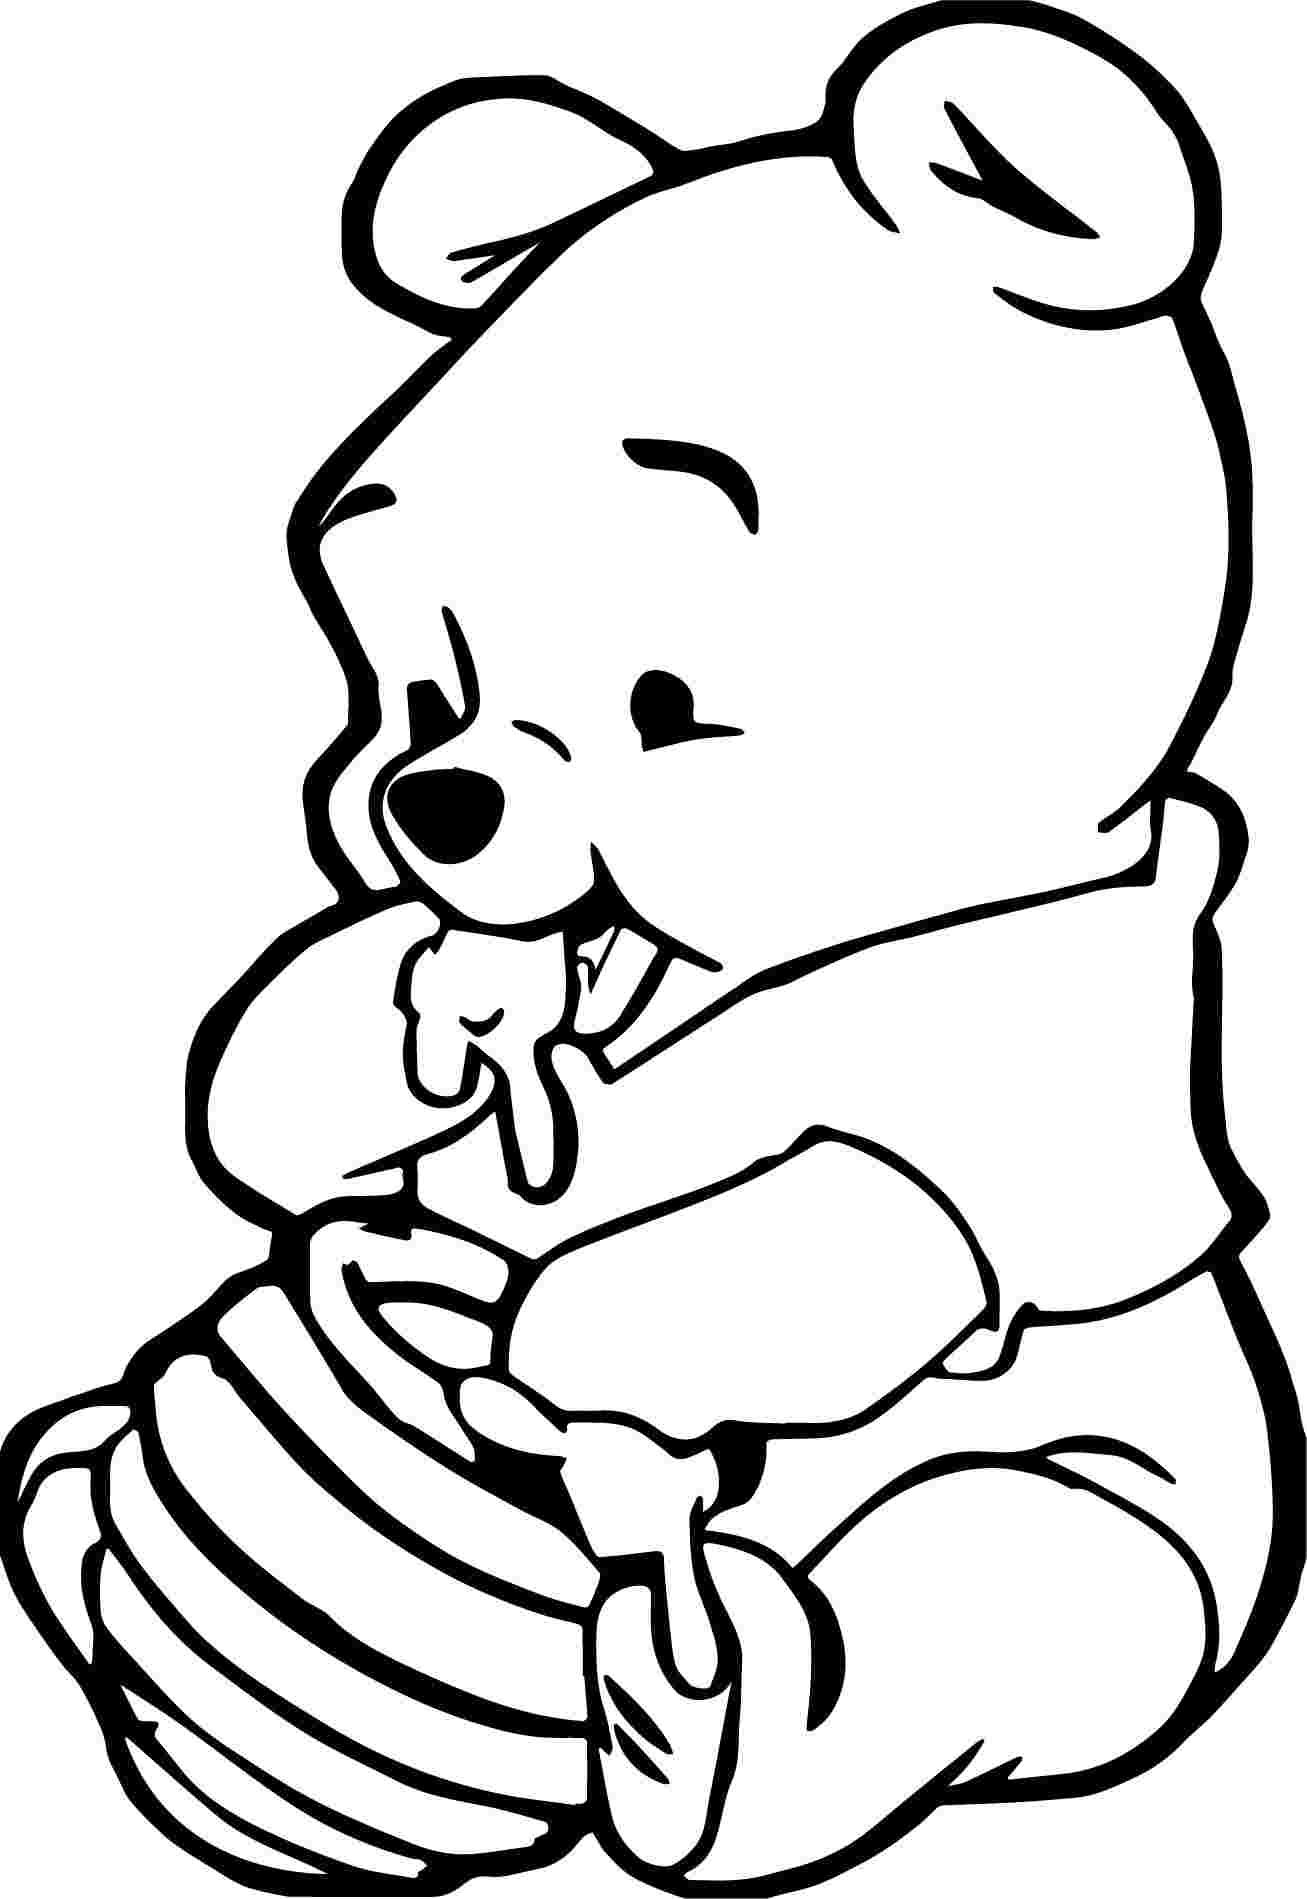 Coloring Pages Of Baby Eeyore Animal Coloring Pages Bear Coloring Pages Cute Coloring Pages